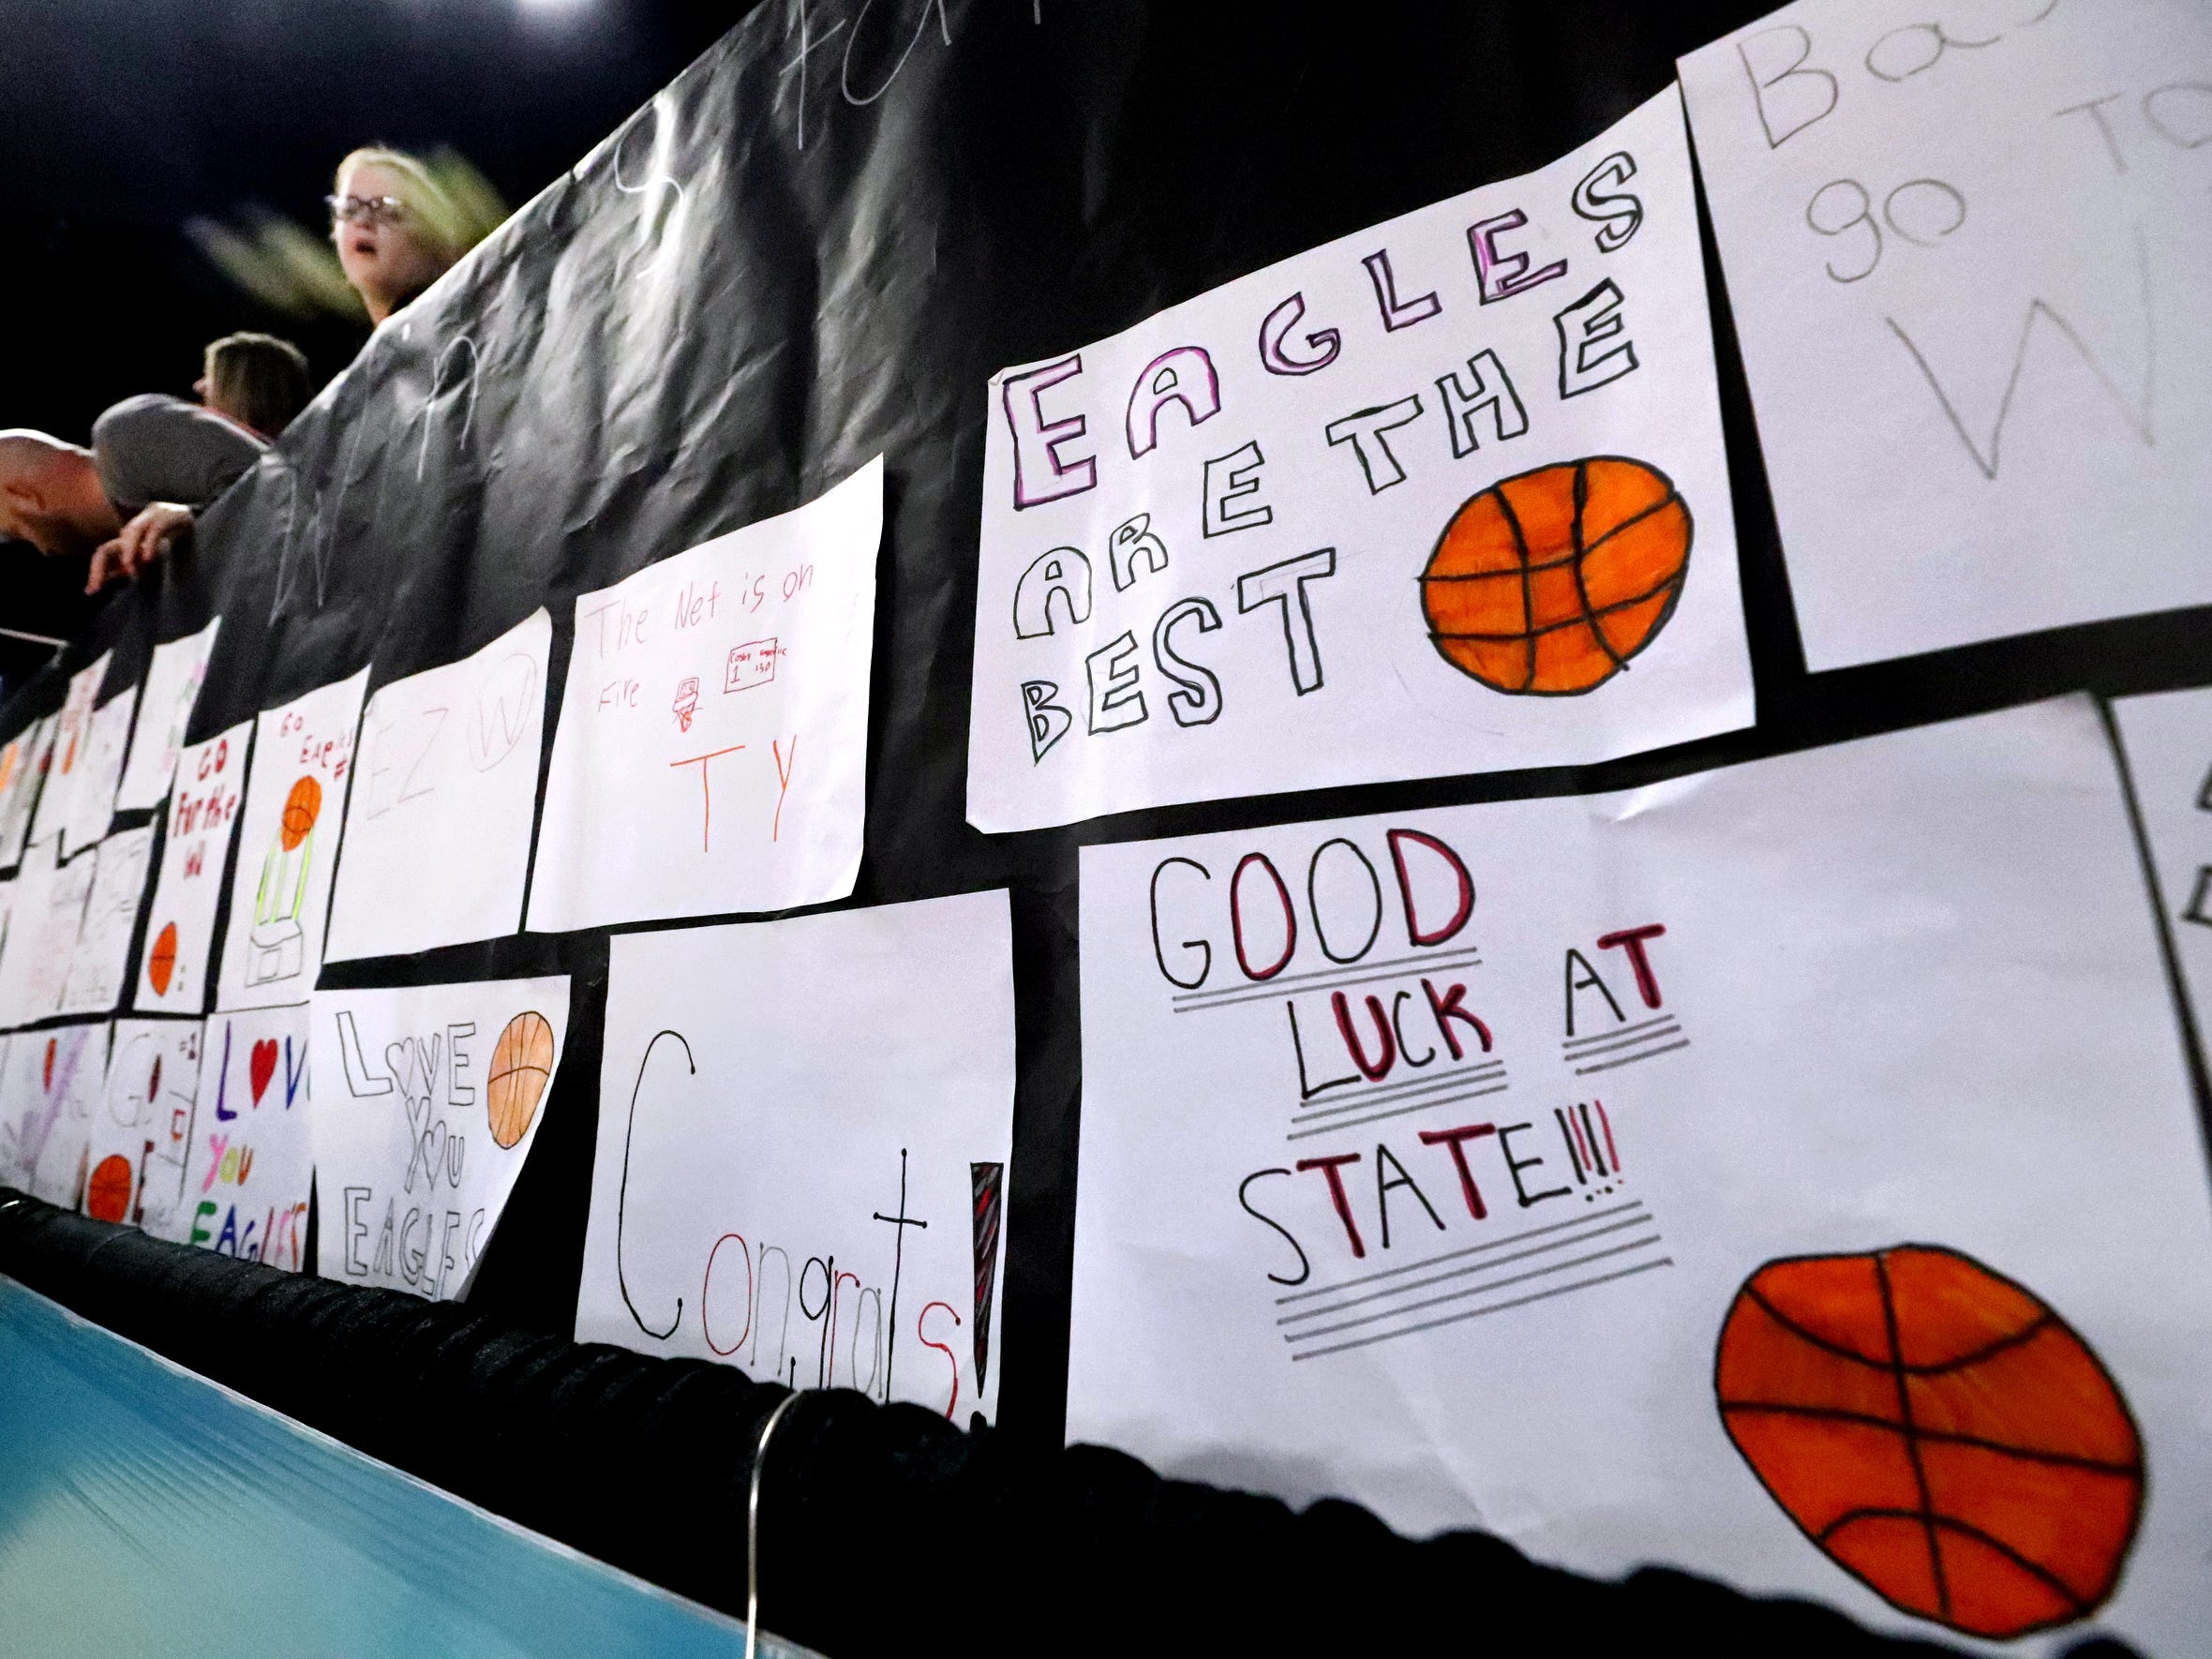 The Elementary students at Eagleville sent posters for the Eagleville boys basketball team as they take on Cosby during the quarterfinal round of the TSSAA Class A Boys State Tournament, on Thursday, March 14, 2019, at Murphy Center in Murfreesboro, Tenn.